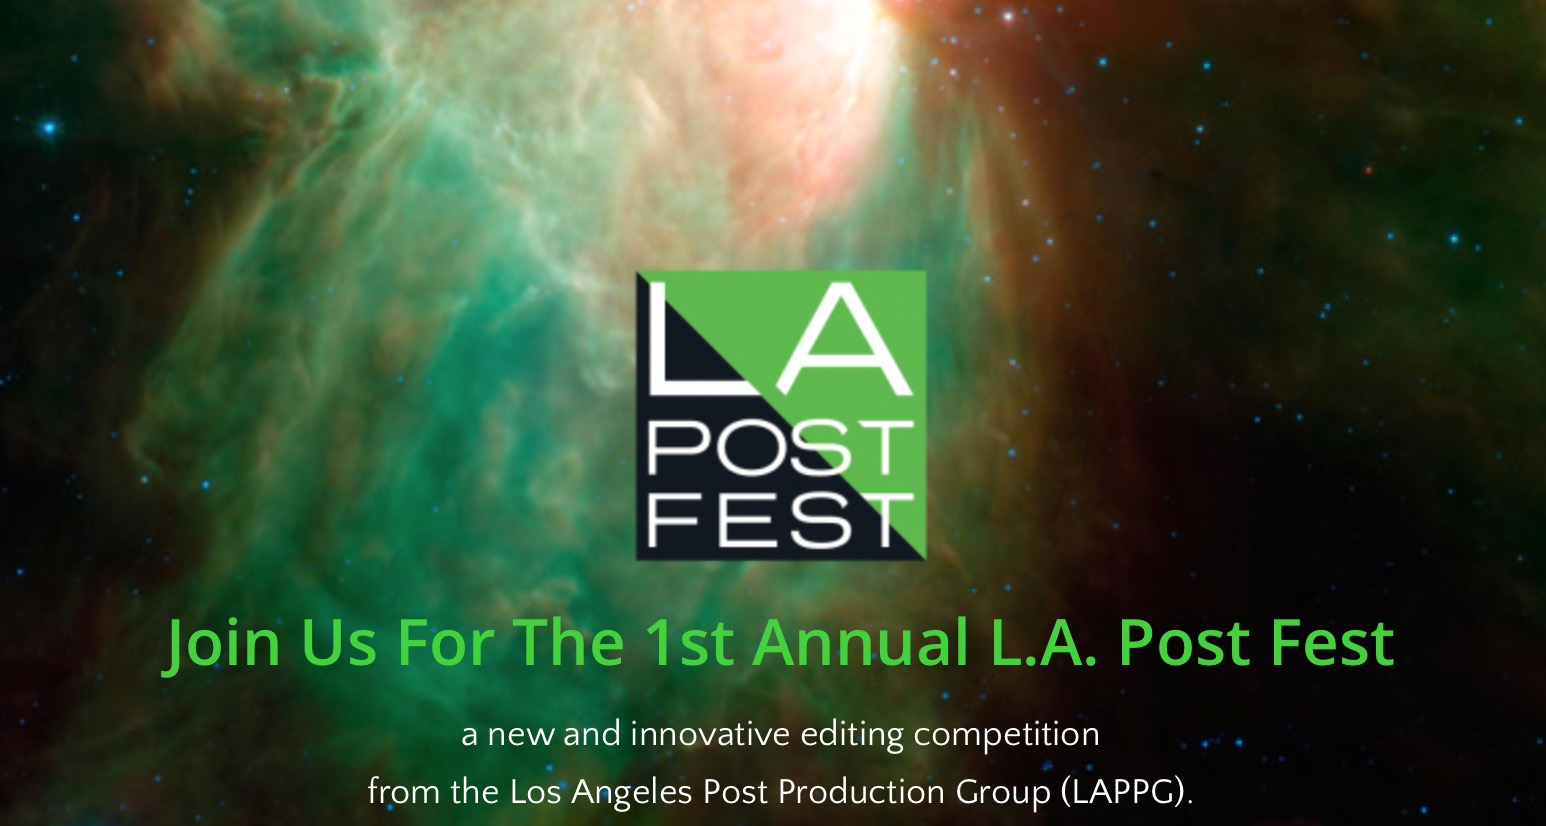 Post Production Los Angeles The First Annual La Post Fest Is May 14 2016 By Pvc News Staff